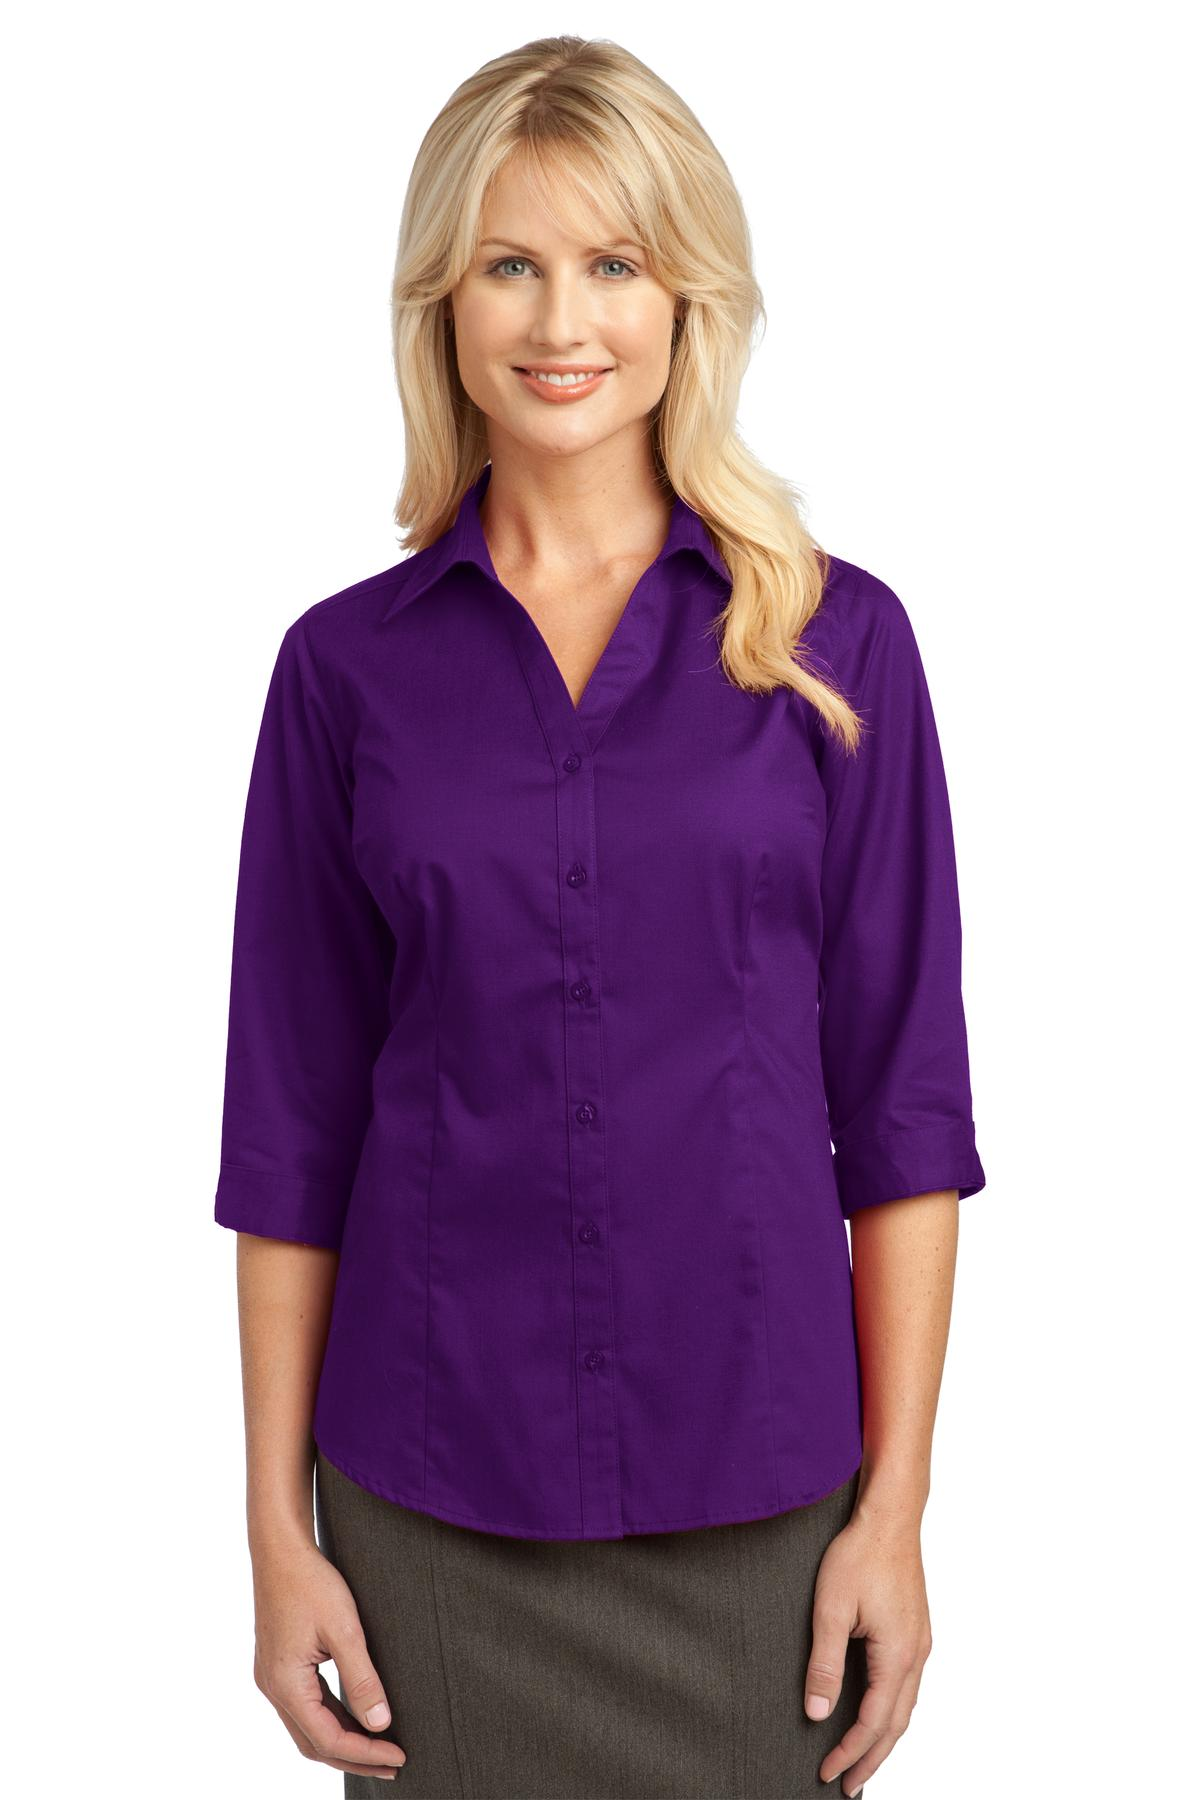 White Port Authority Ladies Dry Zone® UV Micro-Mesh Polo.